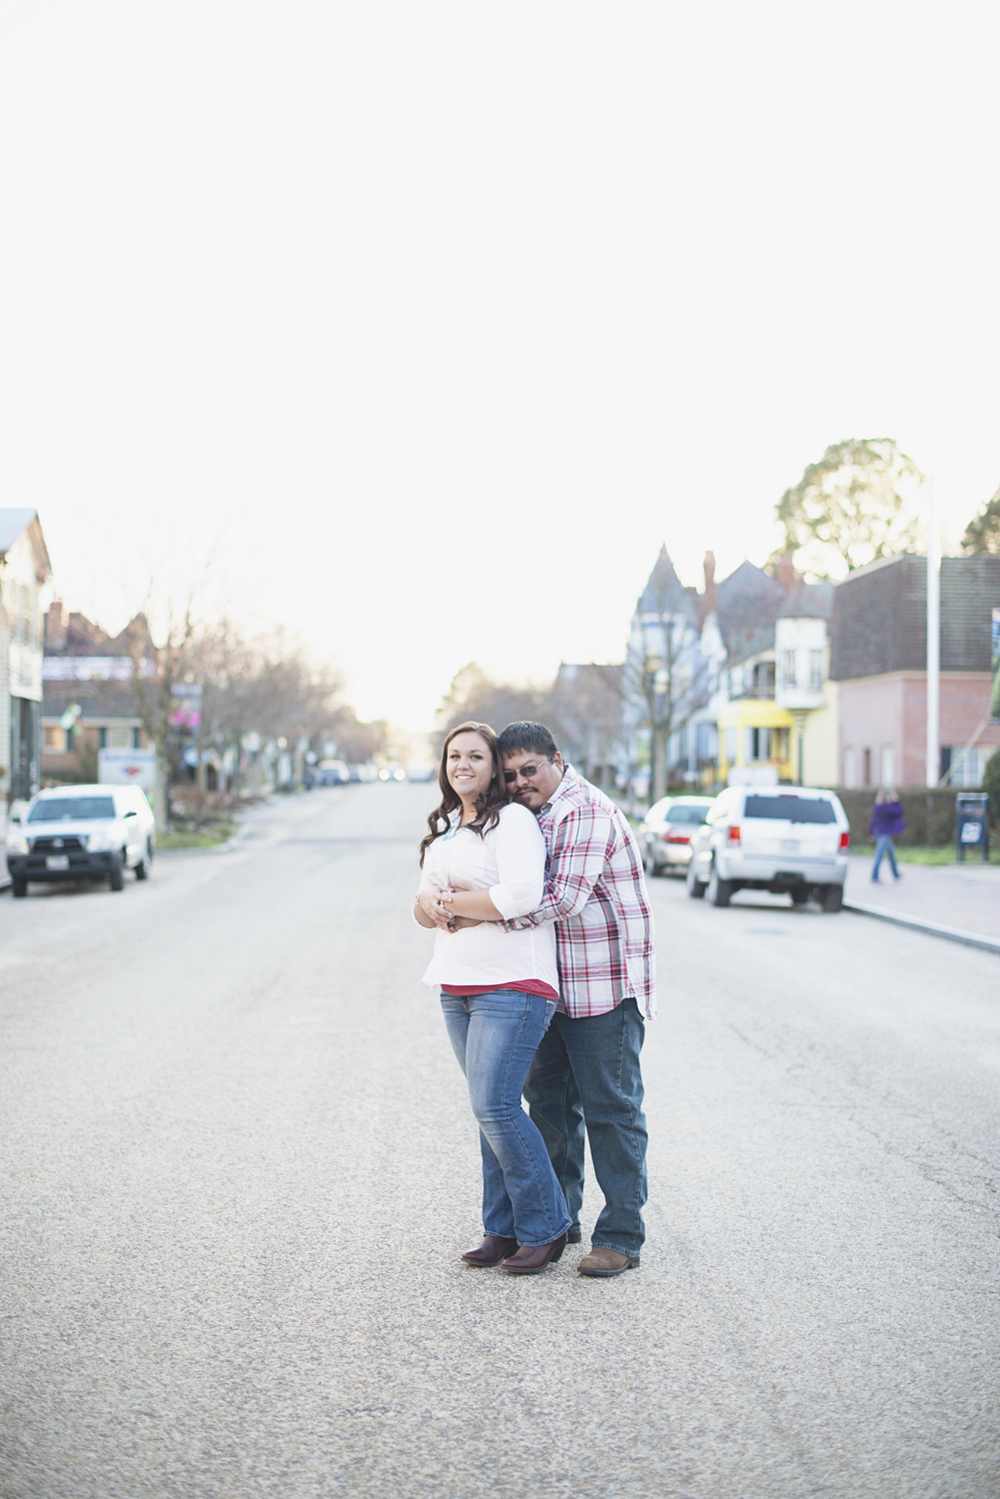 Cute engagement session posing ideas | Downtown engagement session